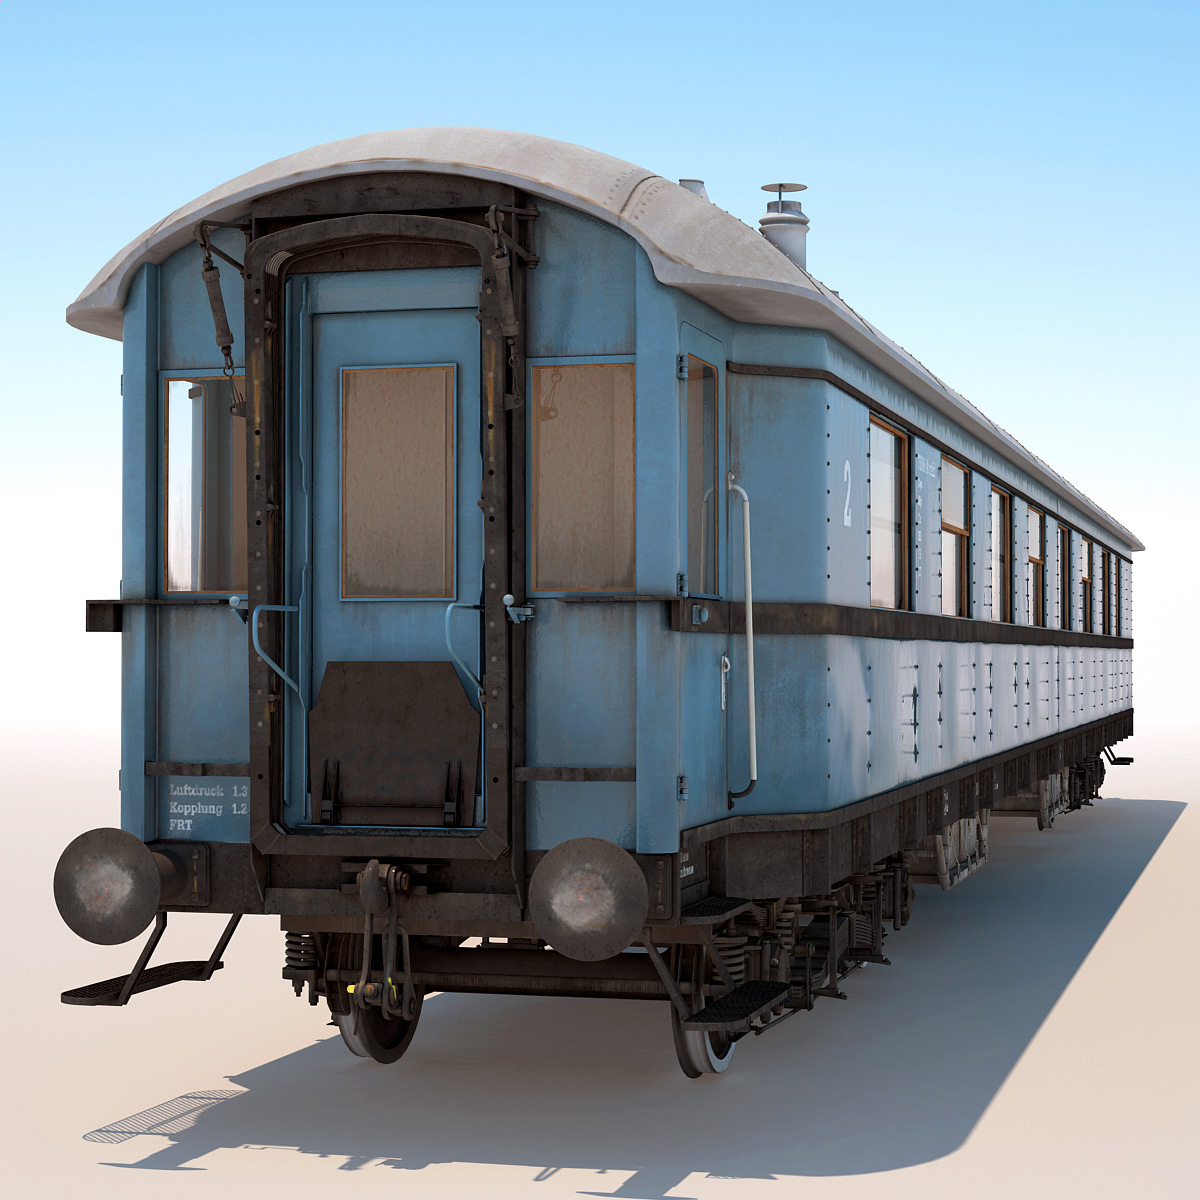 Old_Passenger_Train_V2_001.jpg